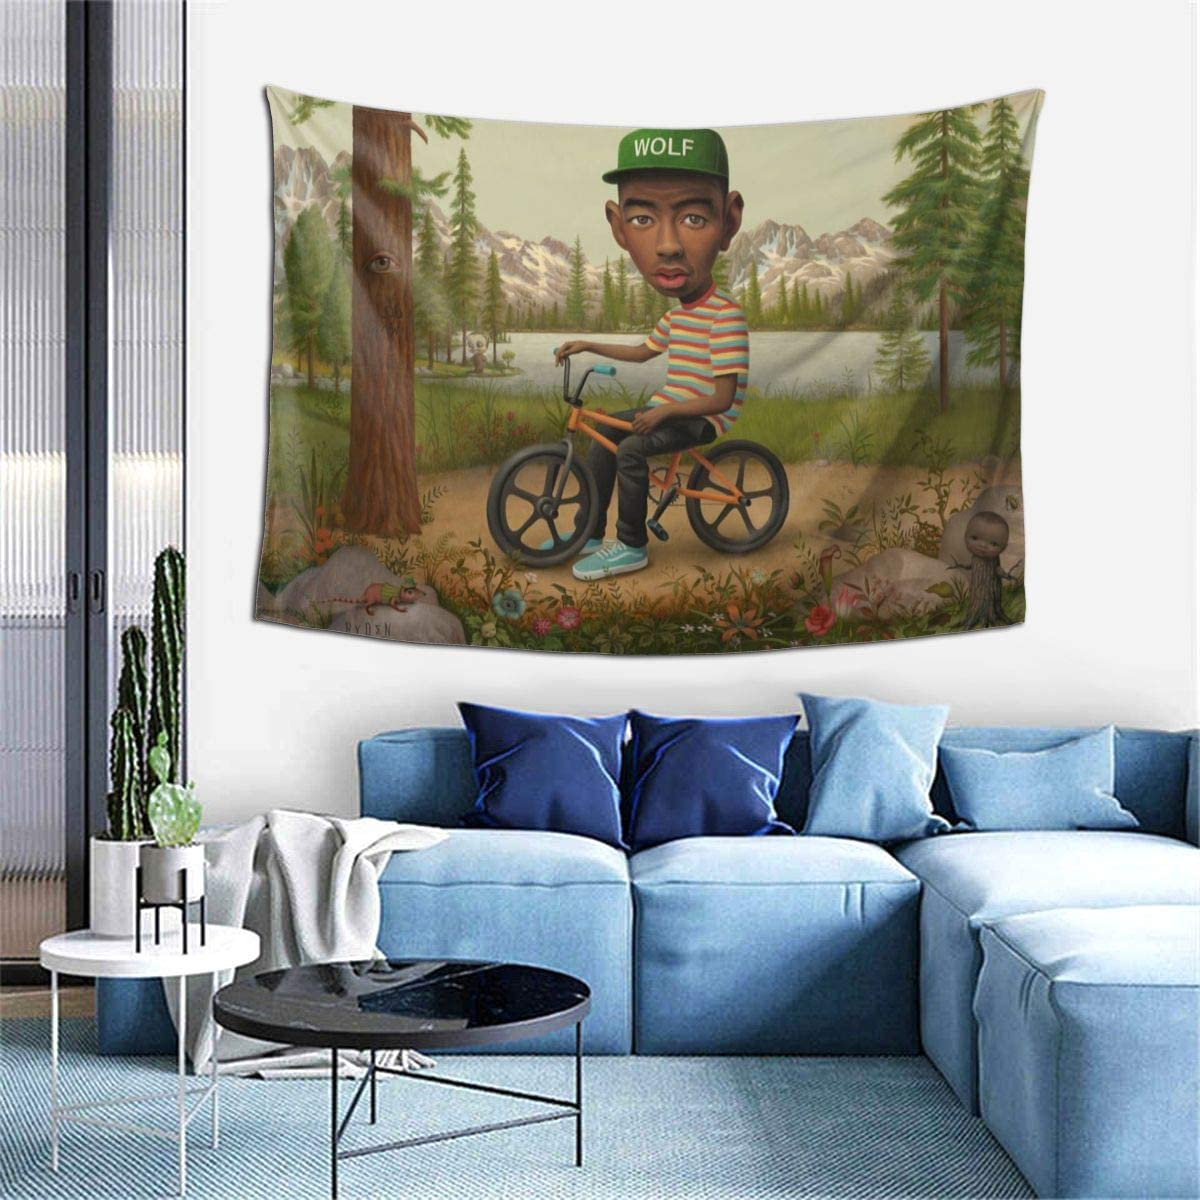 Amazon Com Kevlin Shop Tapestry Wall Hanging Tyler The Creator Wall Tapestry With Art Home Decorations For Living Room Bedroom Dorm Decor In 60x40 Inch Home Kitchen